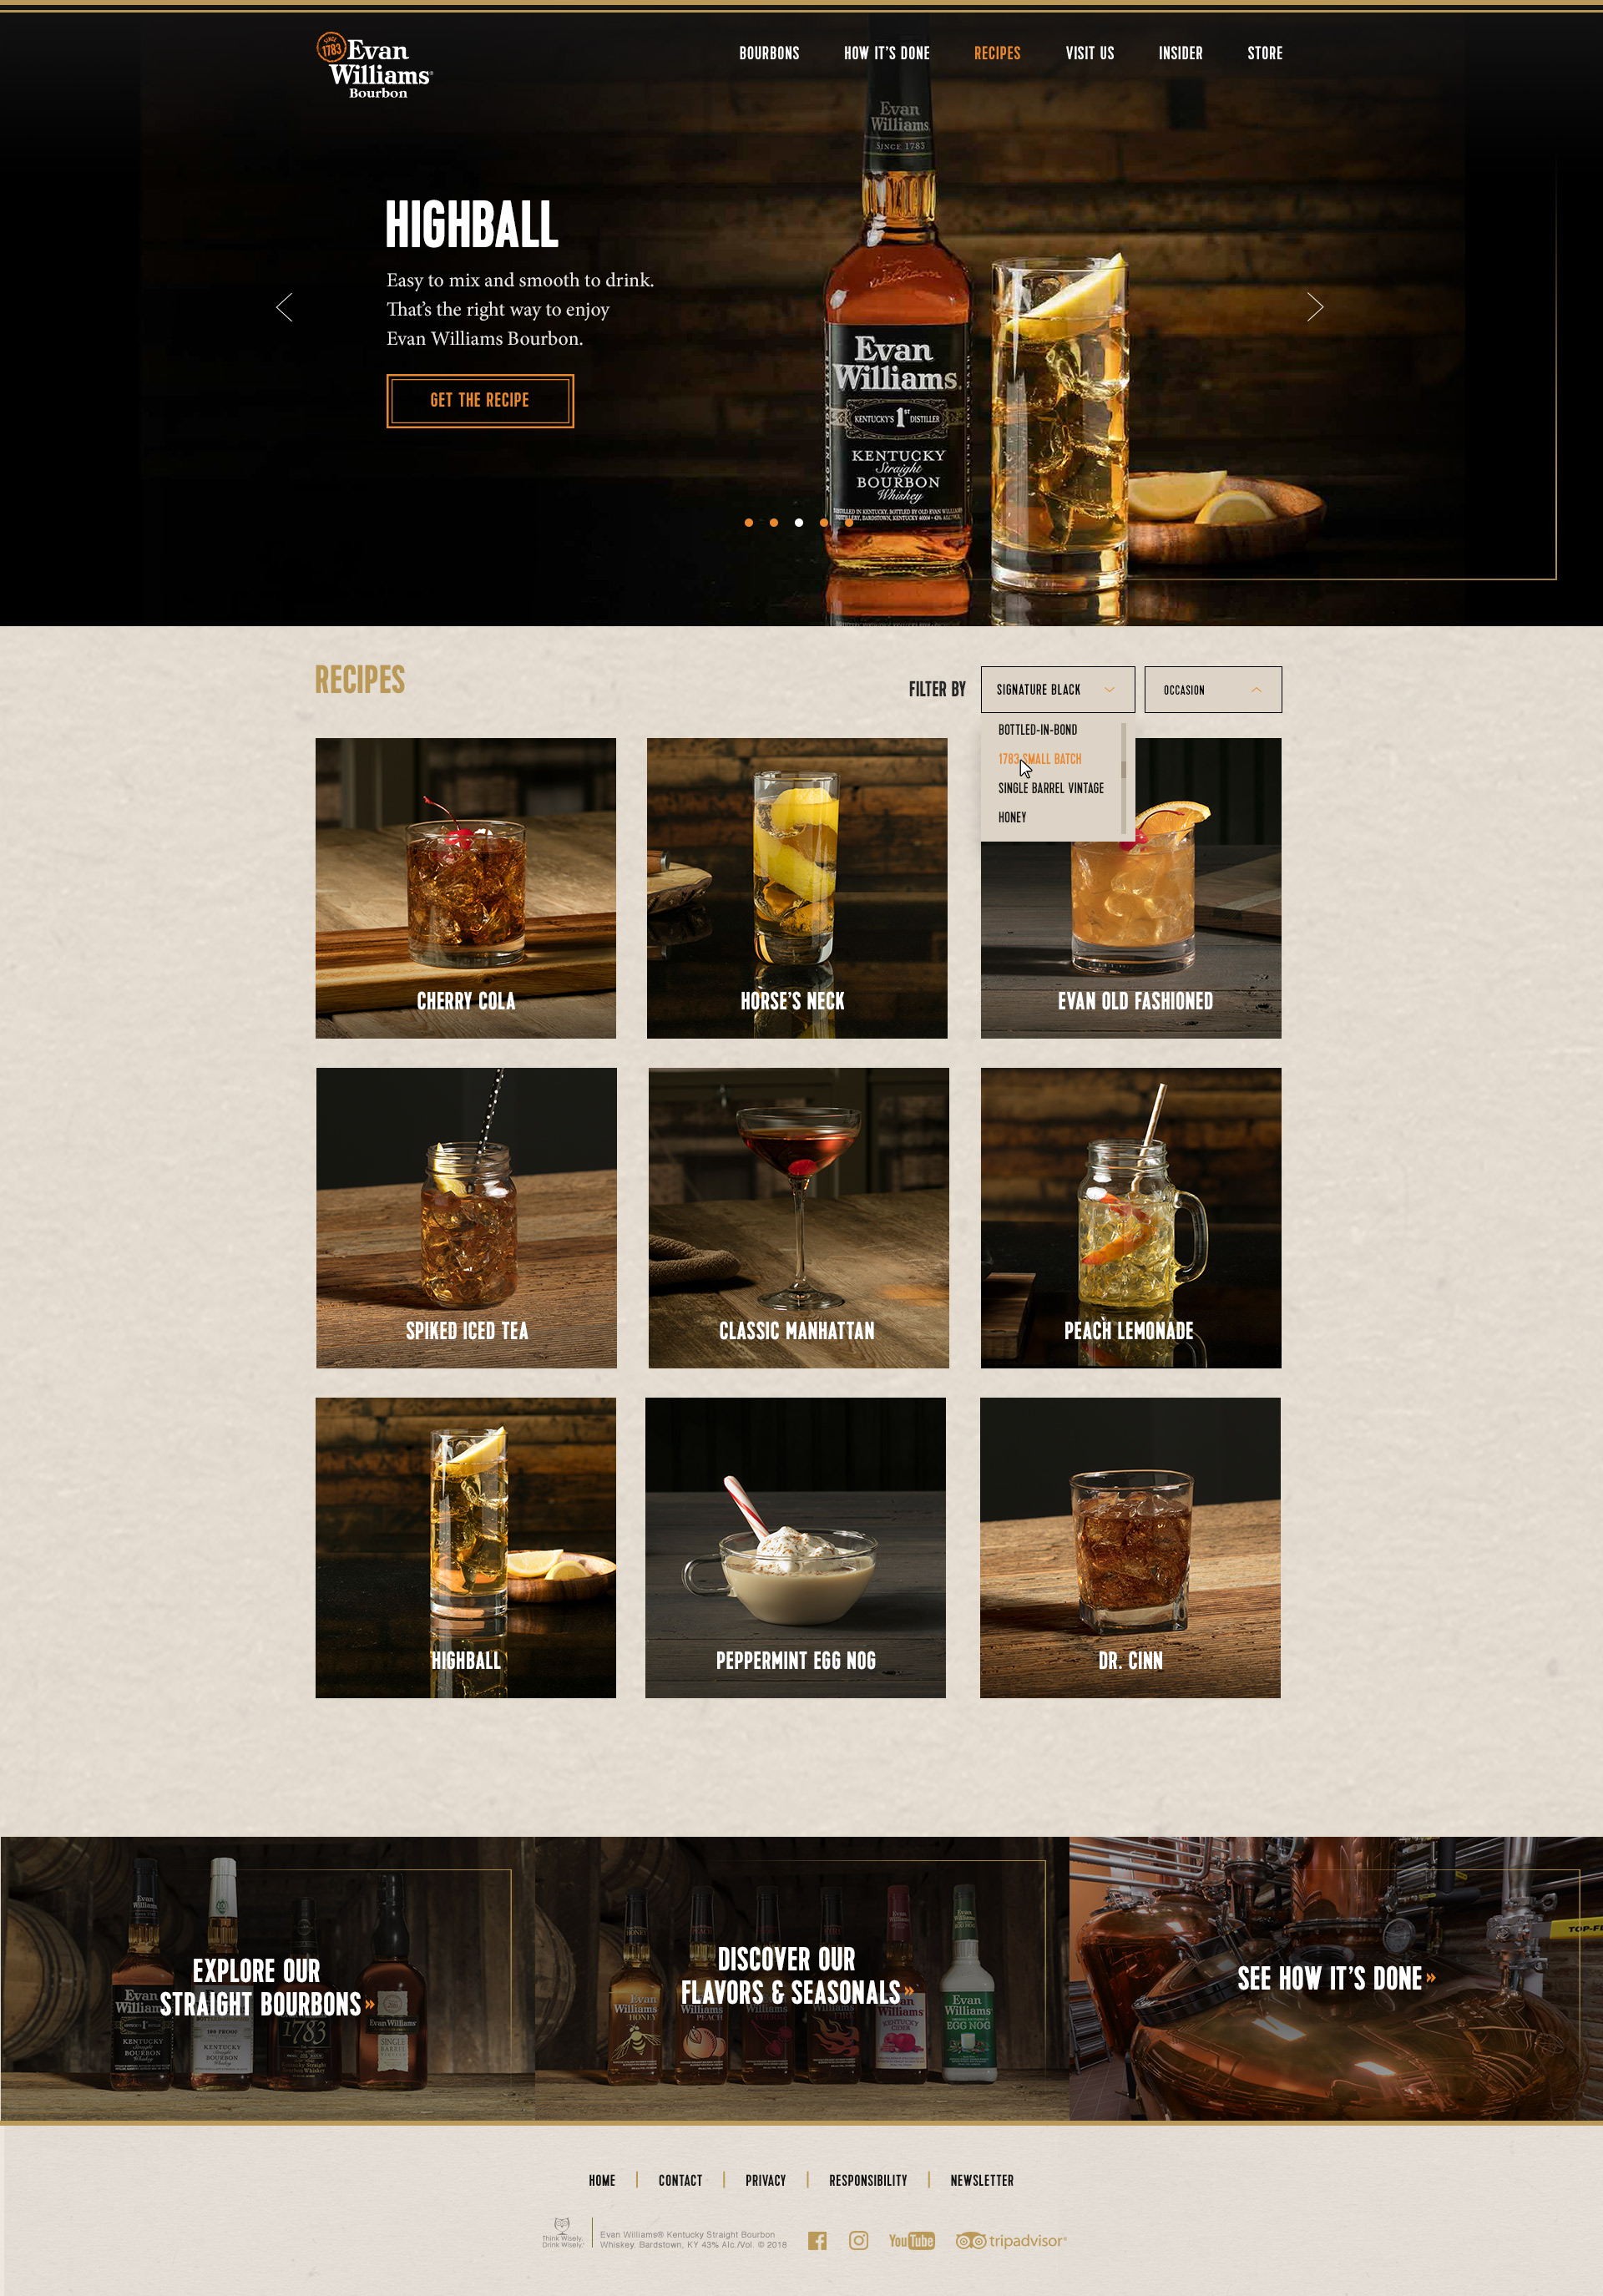 EWB_2018-Redesign_Recipes-Landing-Pg_Desktop_1920